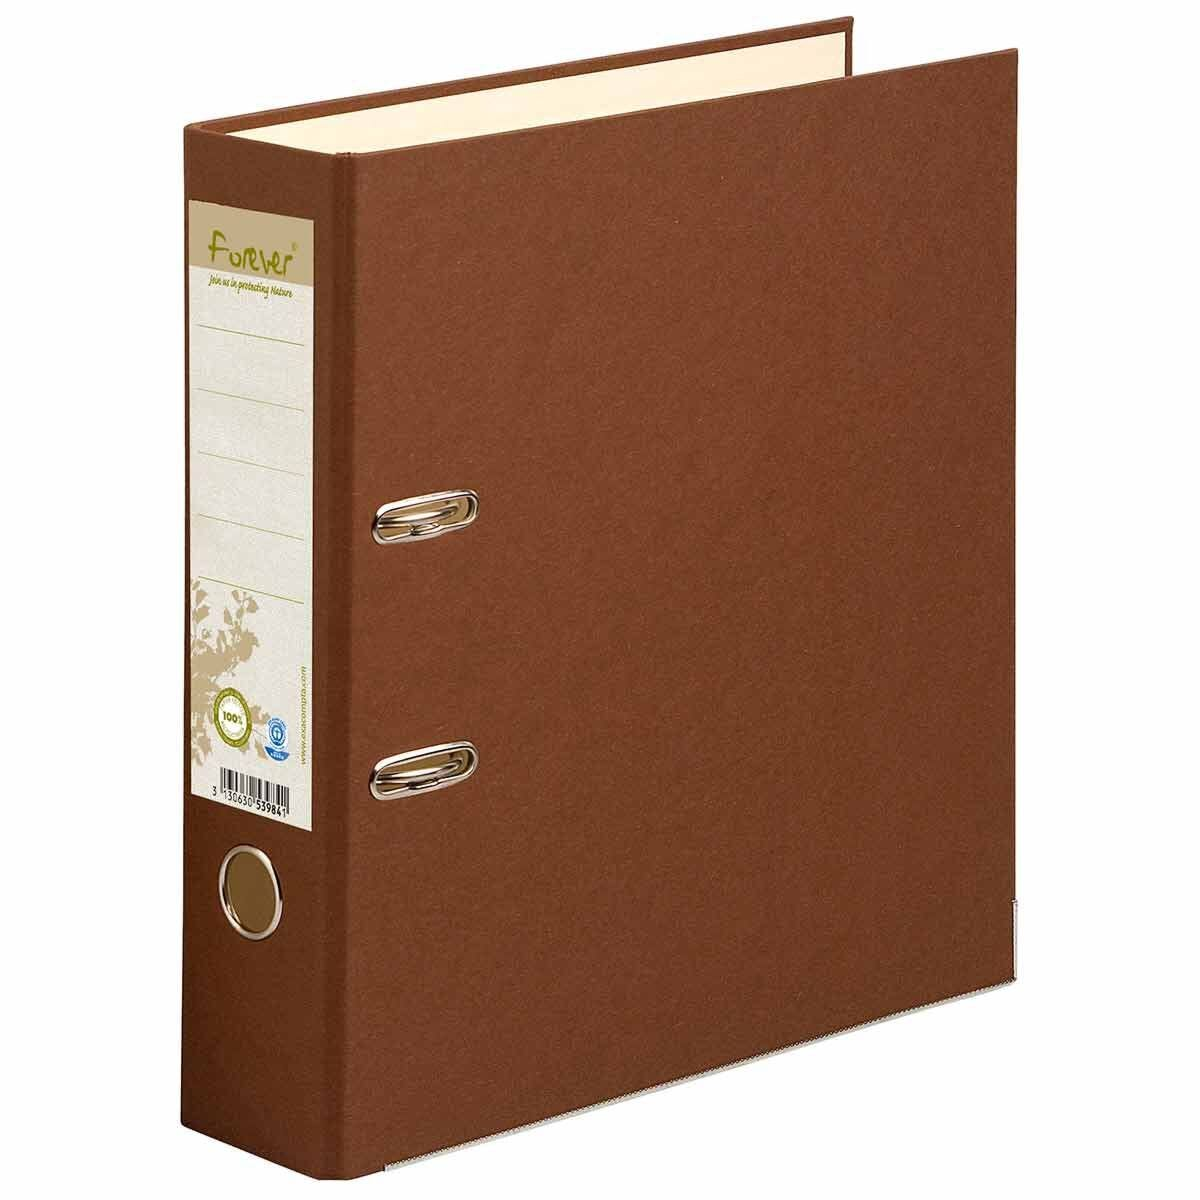 Exacompta Forever Premium Touch Lever Arch File A4 Pack of 10 Chocolate